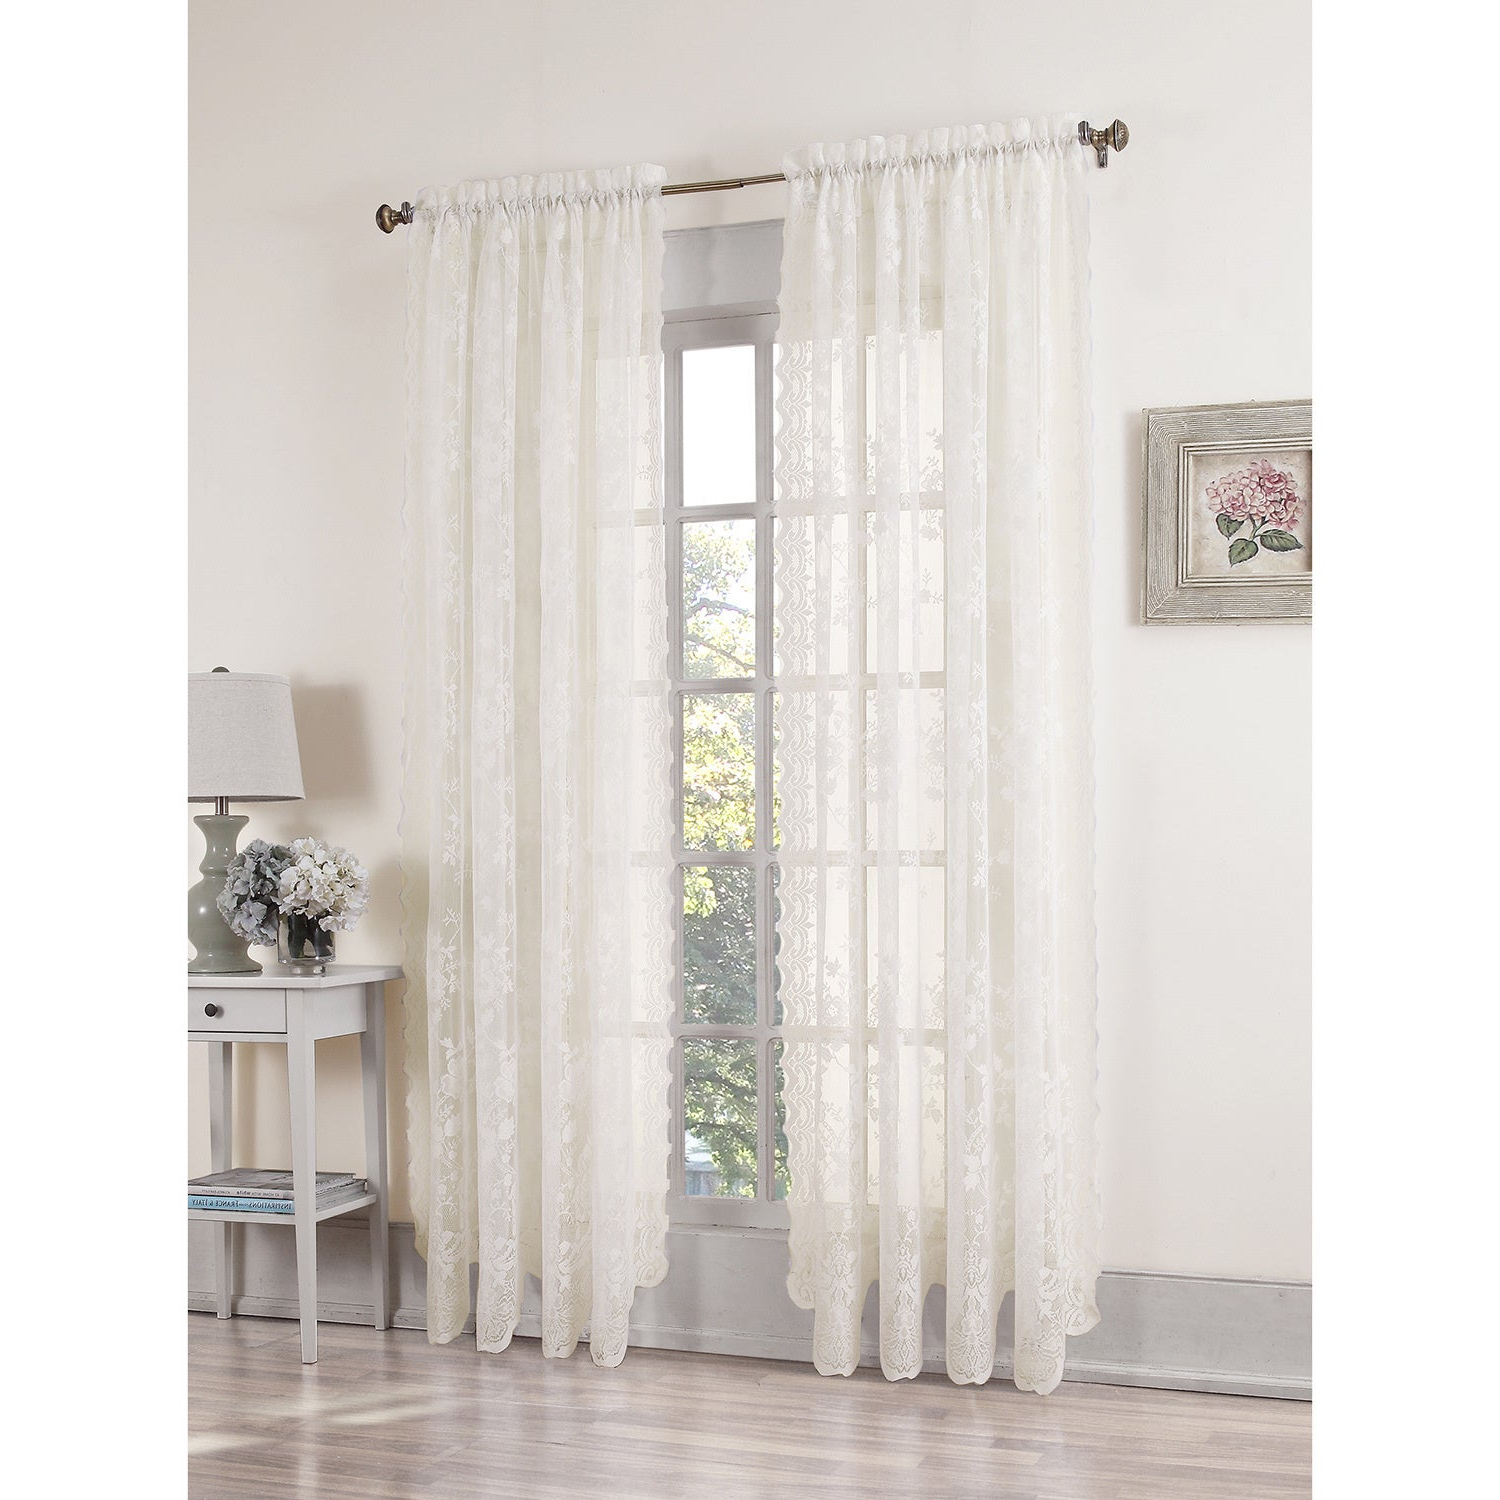 Overstock Shopping – The Best Deals On Curtains For Well Liked Alison Rod Pocket Lace Window Curtain Panels (View 2 of 20)